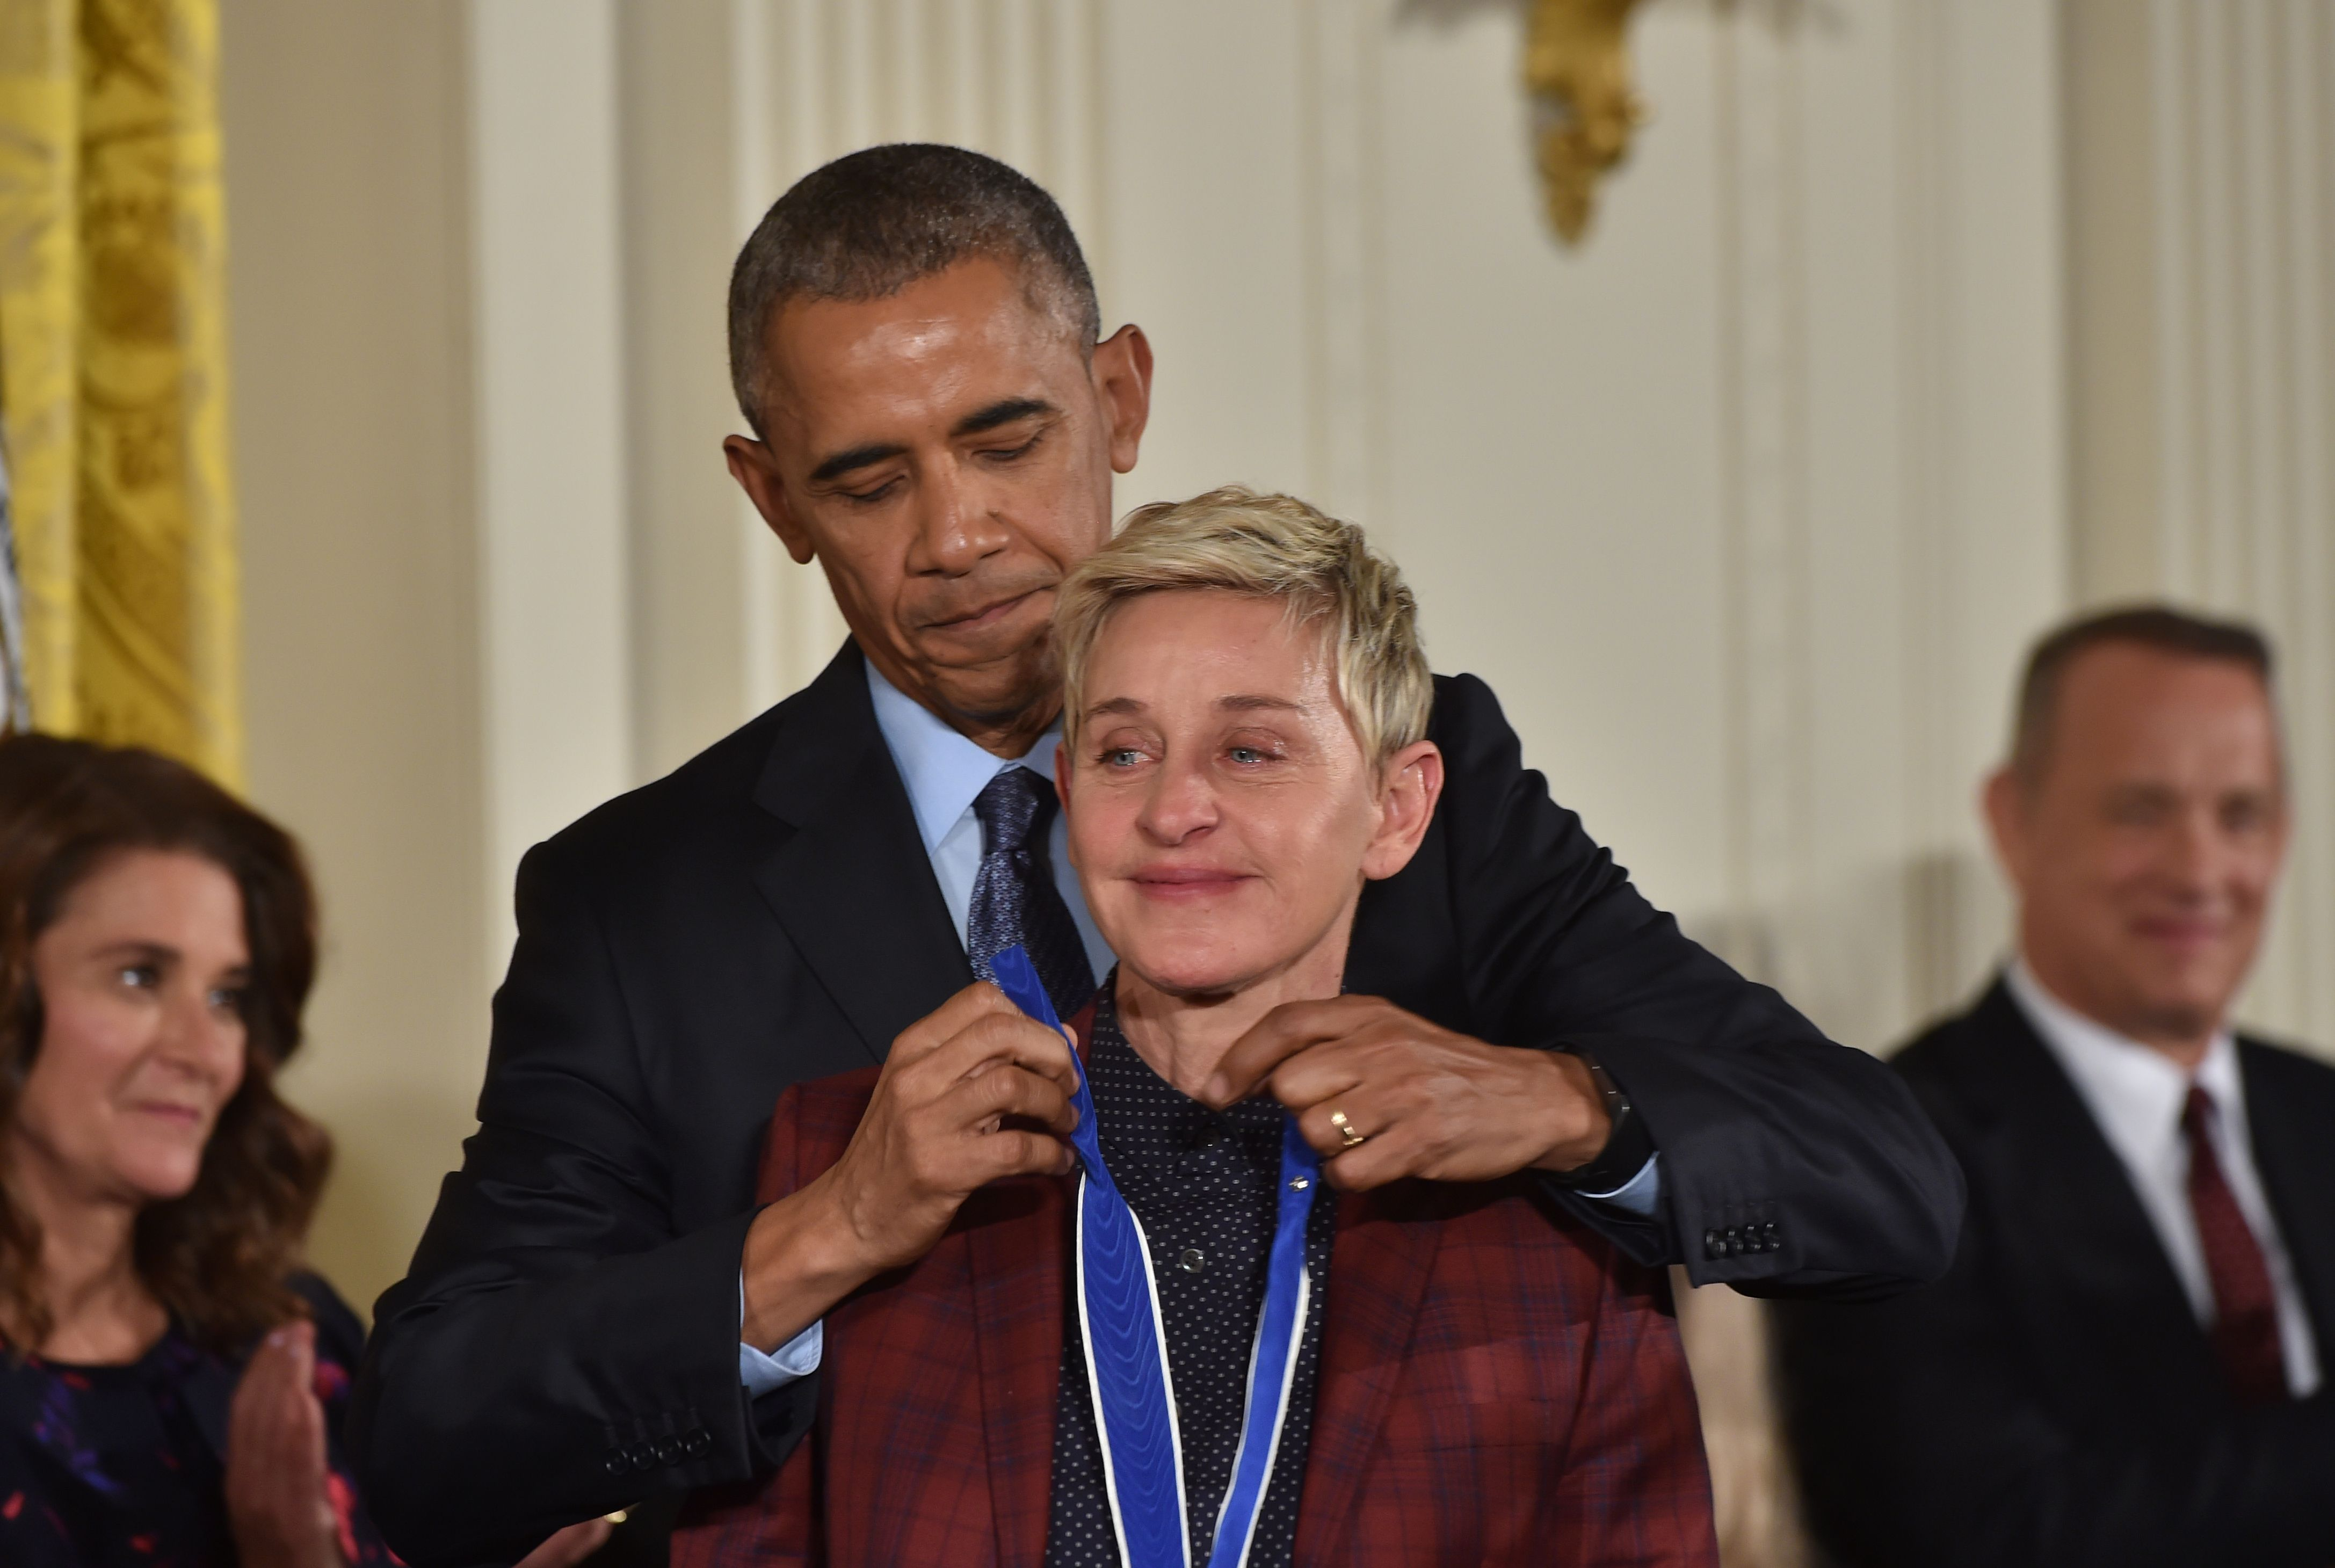 US-POLITICS-OBAMA-MEDAL OF FREEDOM